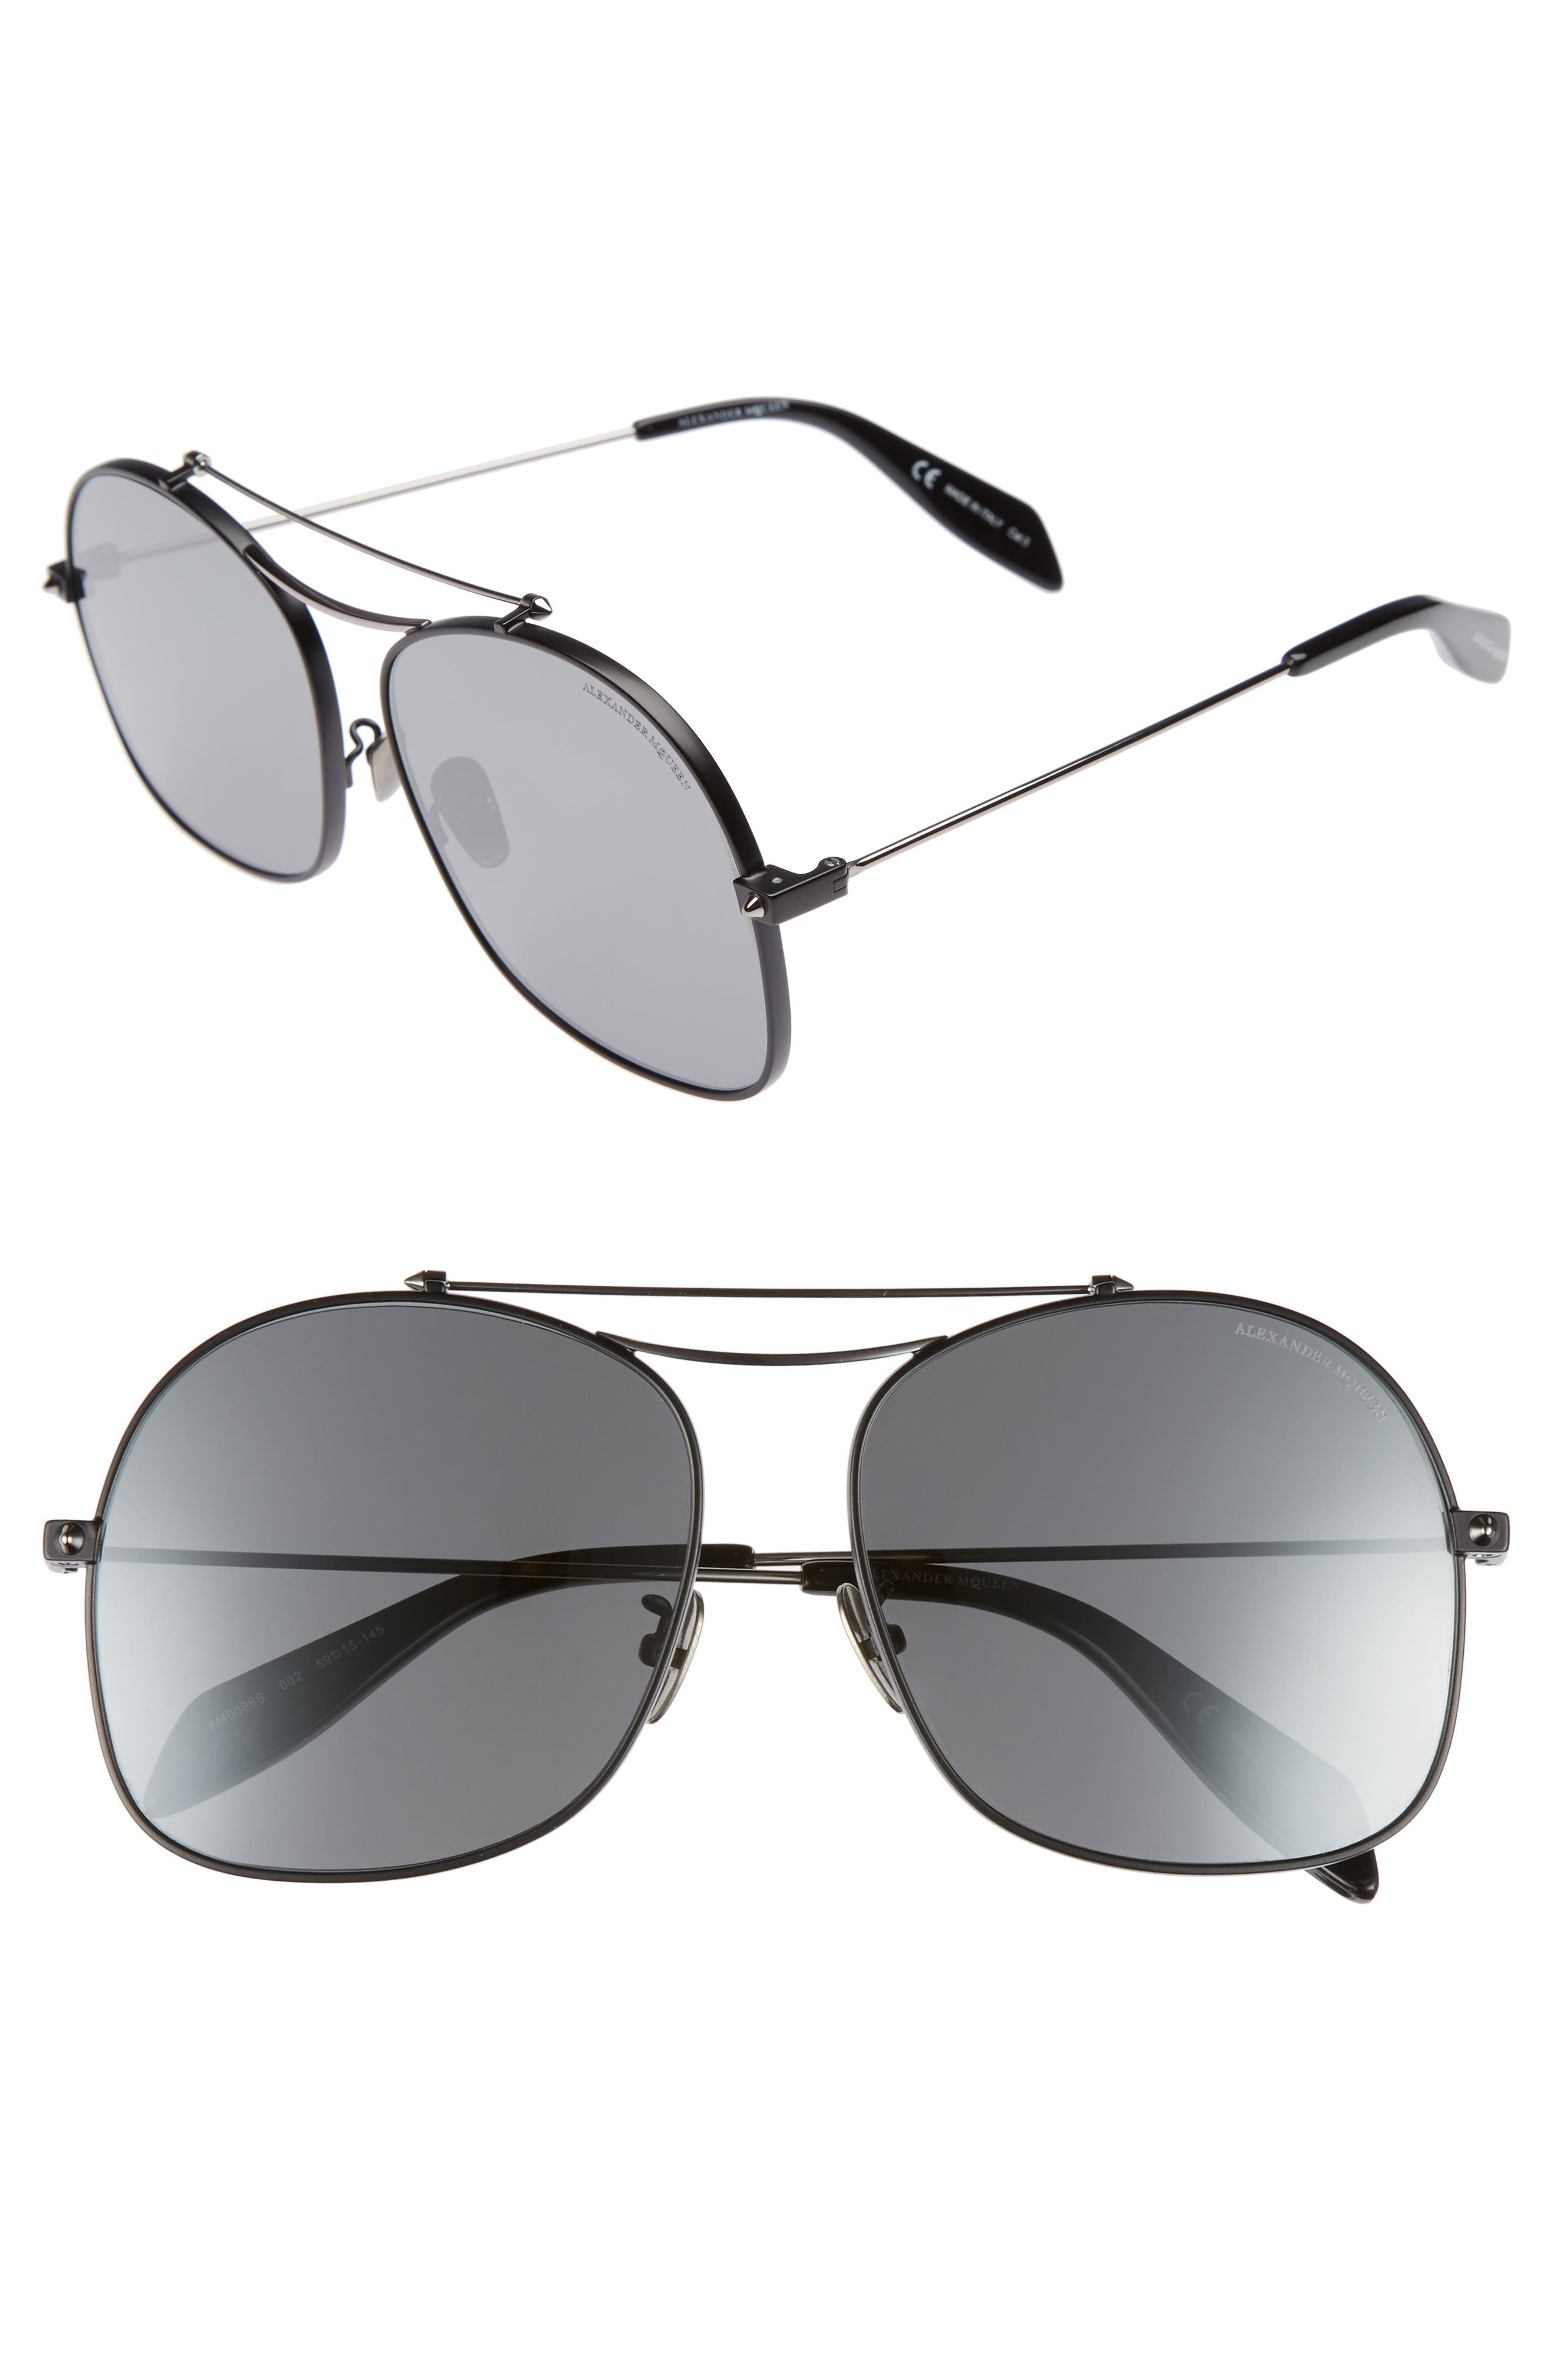 59mm Aviator Sunglasses,                             Main thumbnail 1, color,                             Black